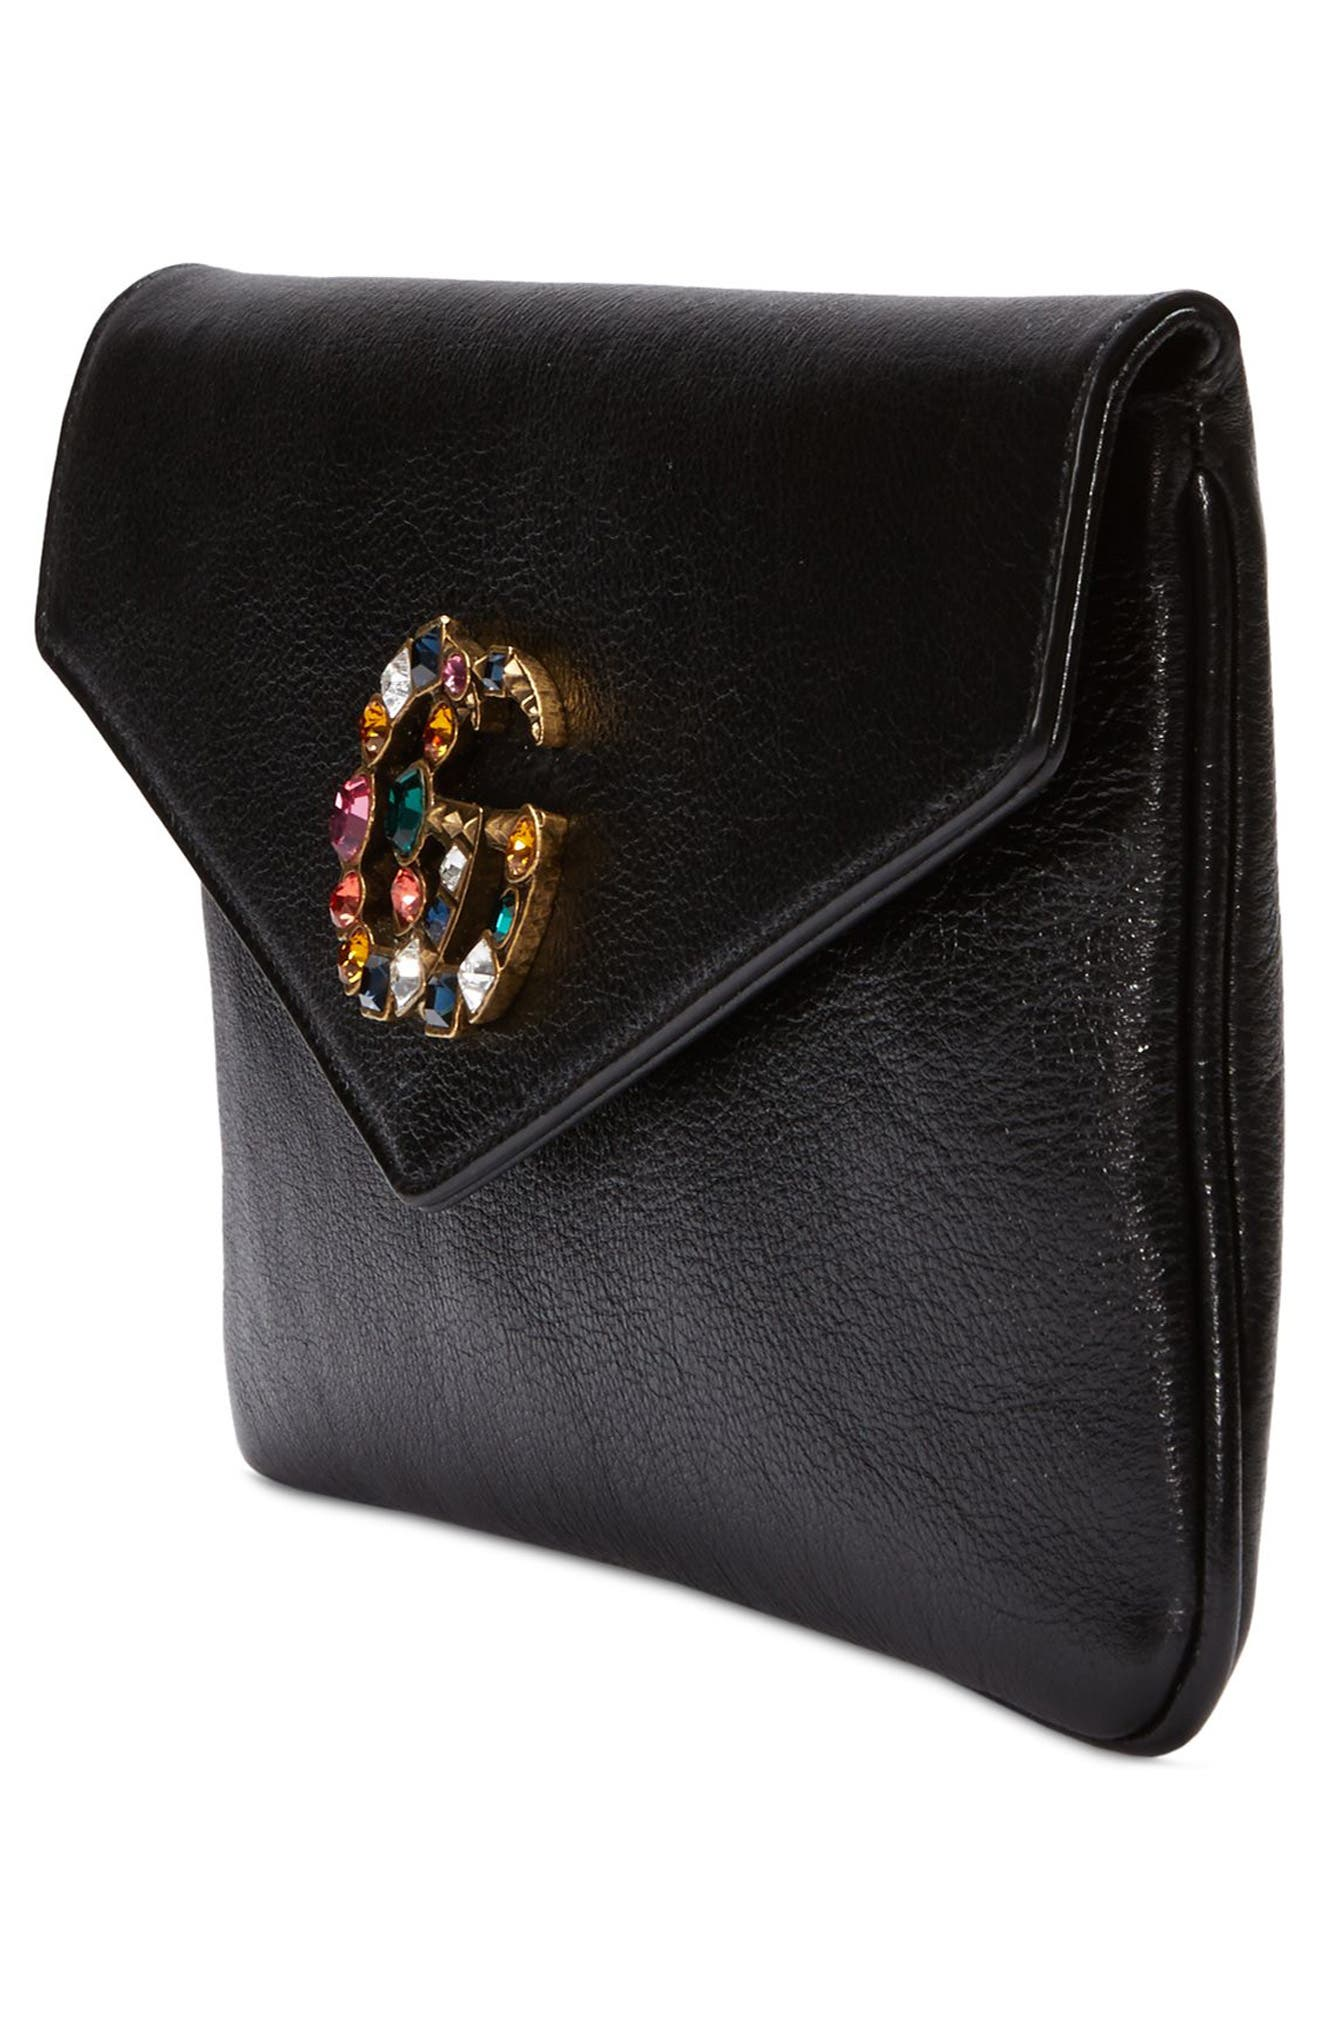 Broadway Crystal GG Leather Envelope Clutch,                             Alternate thumbnail 4, color,                             001